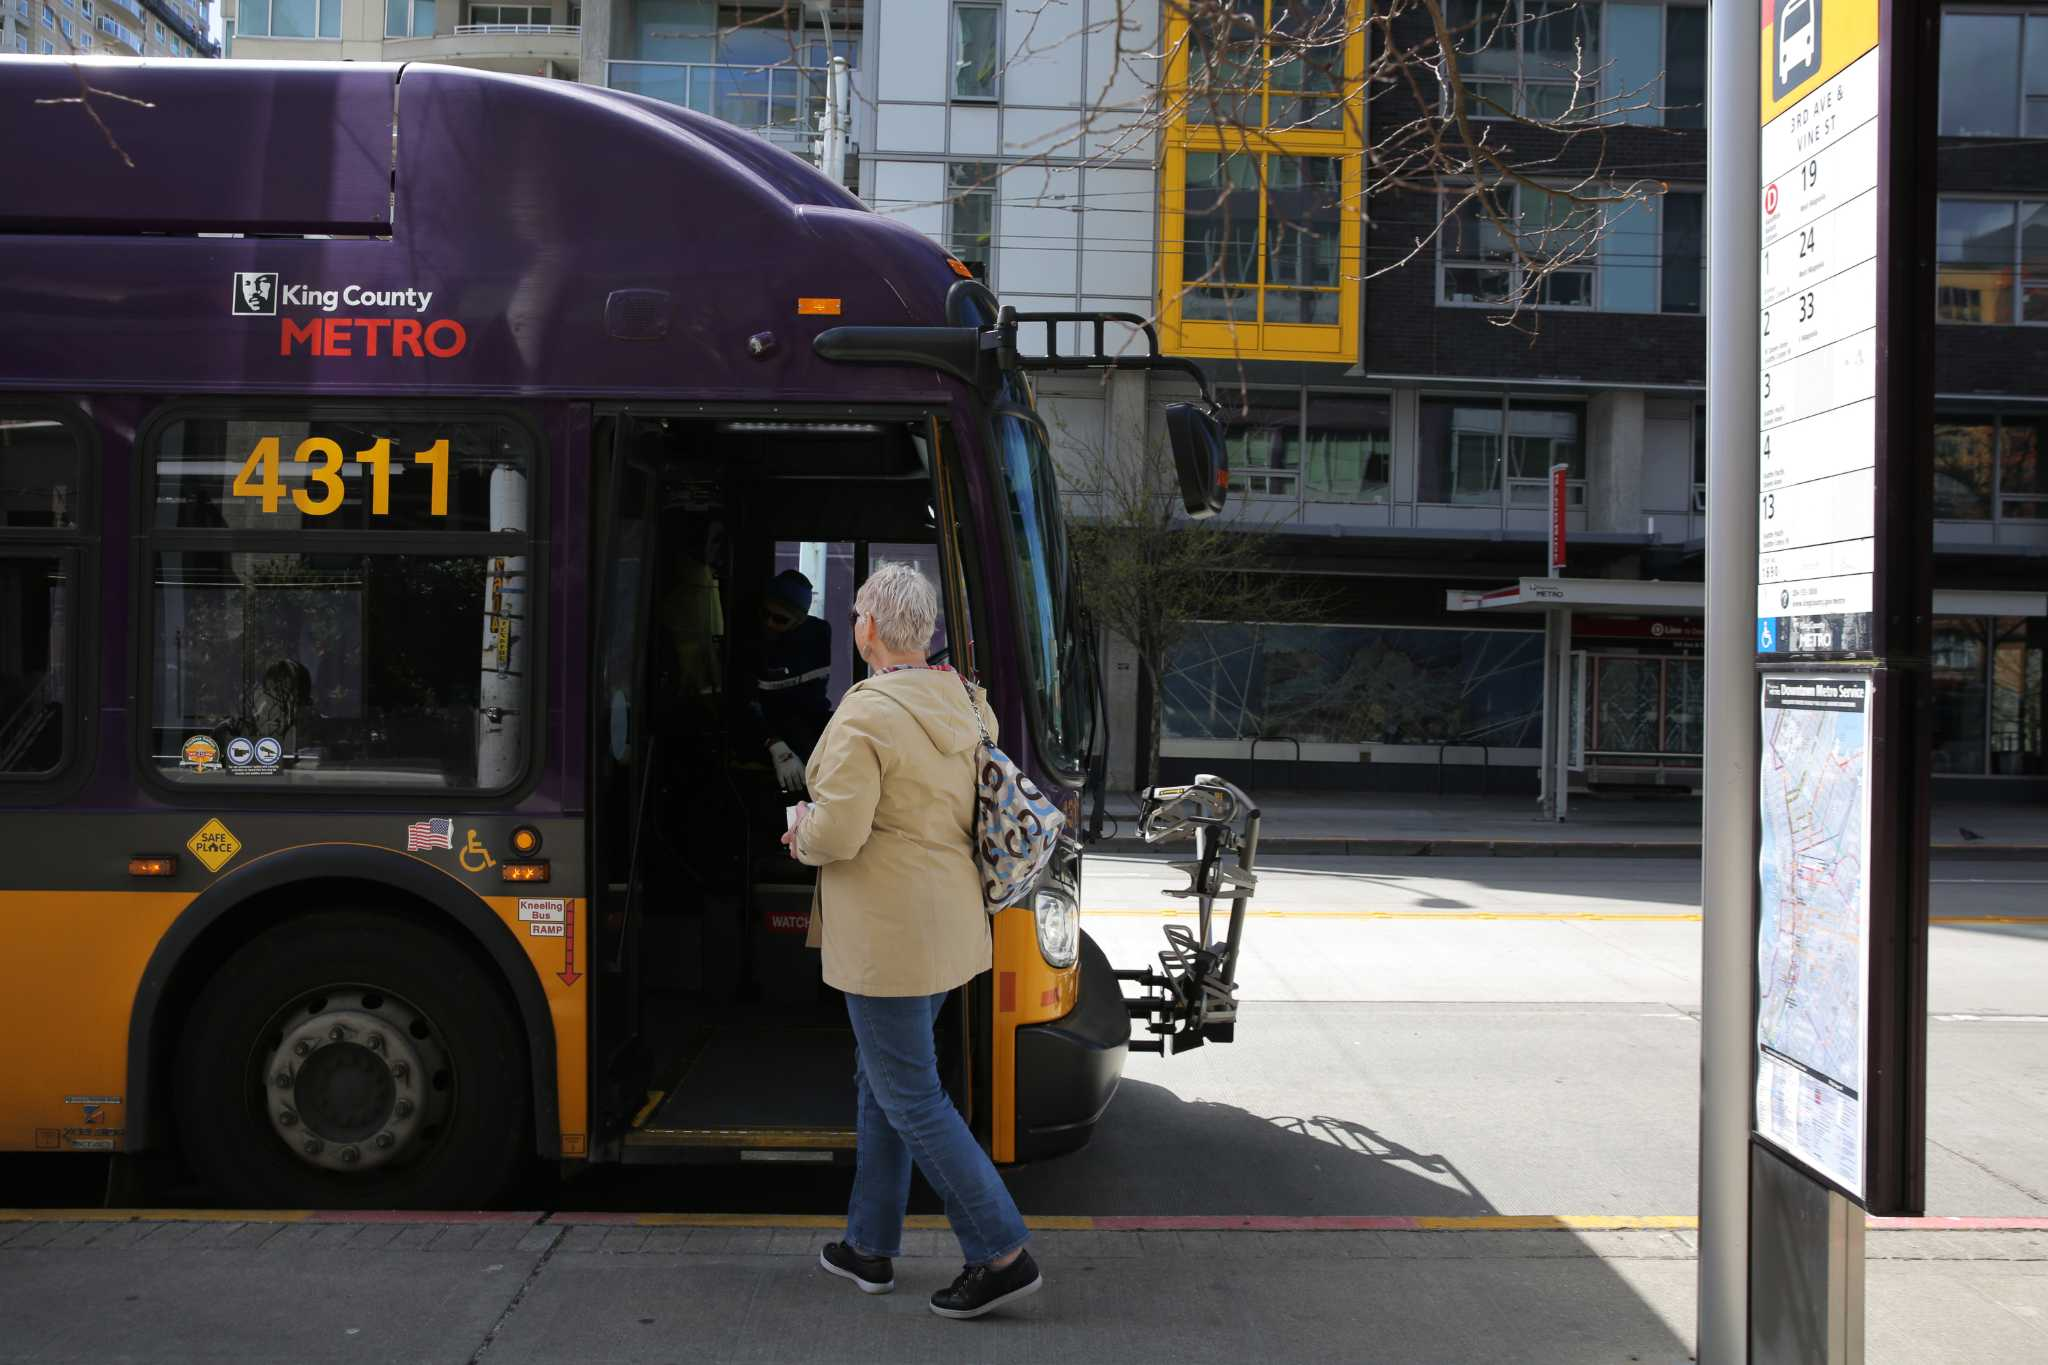 King County Metro releases plan to continue transit services in West Seattle during bridge closure